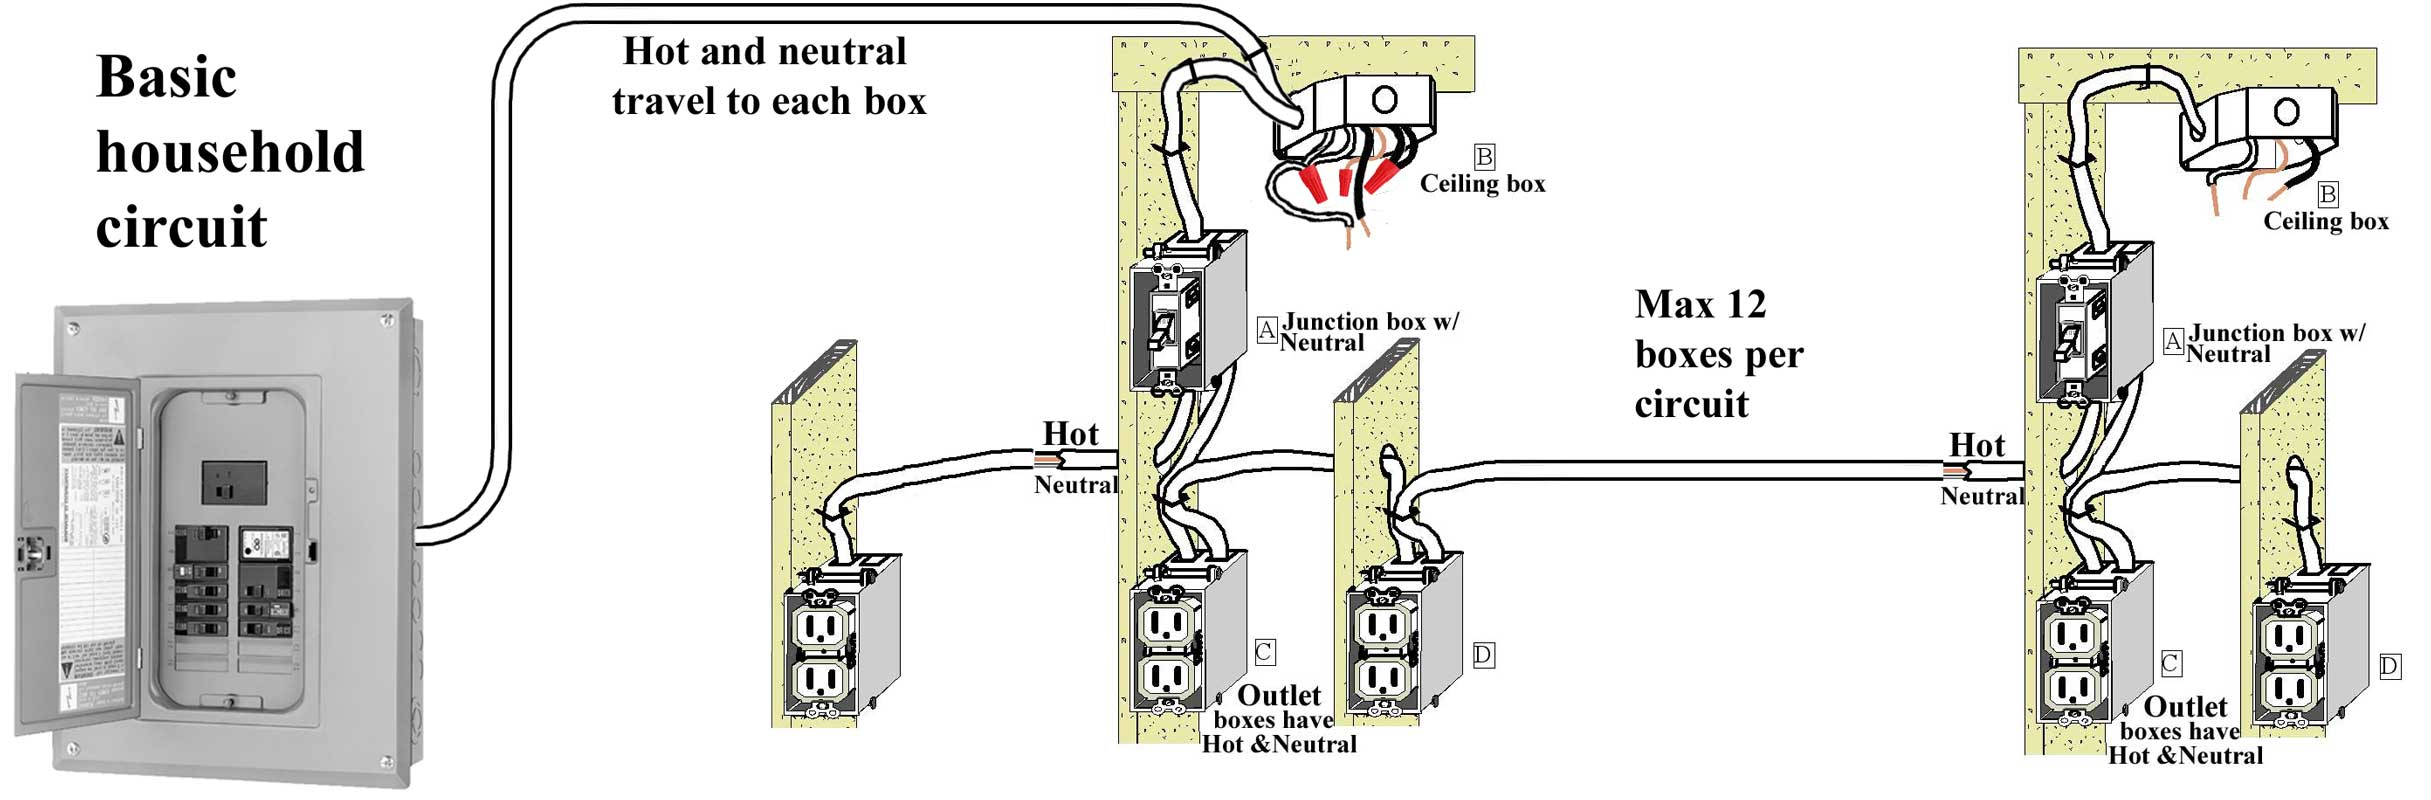 How To Drop Wire From Attic Into Old Work Box Phone Junction Wiring Diagram Larger Image Other Wires